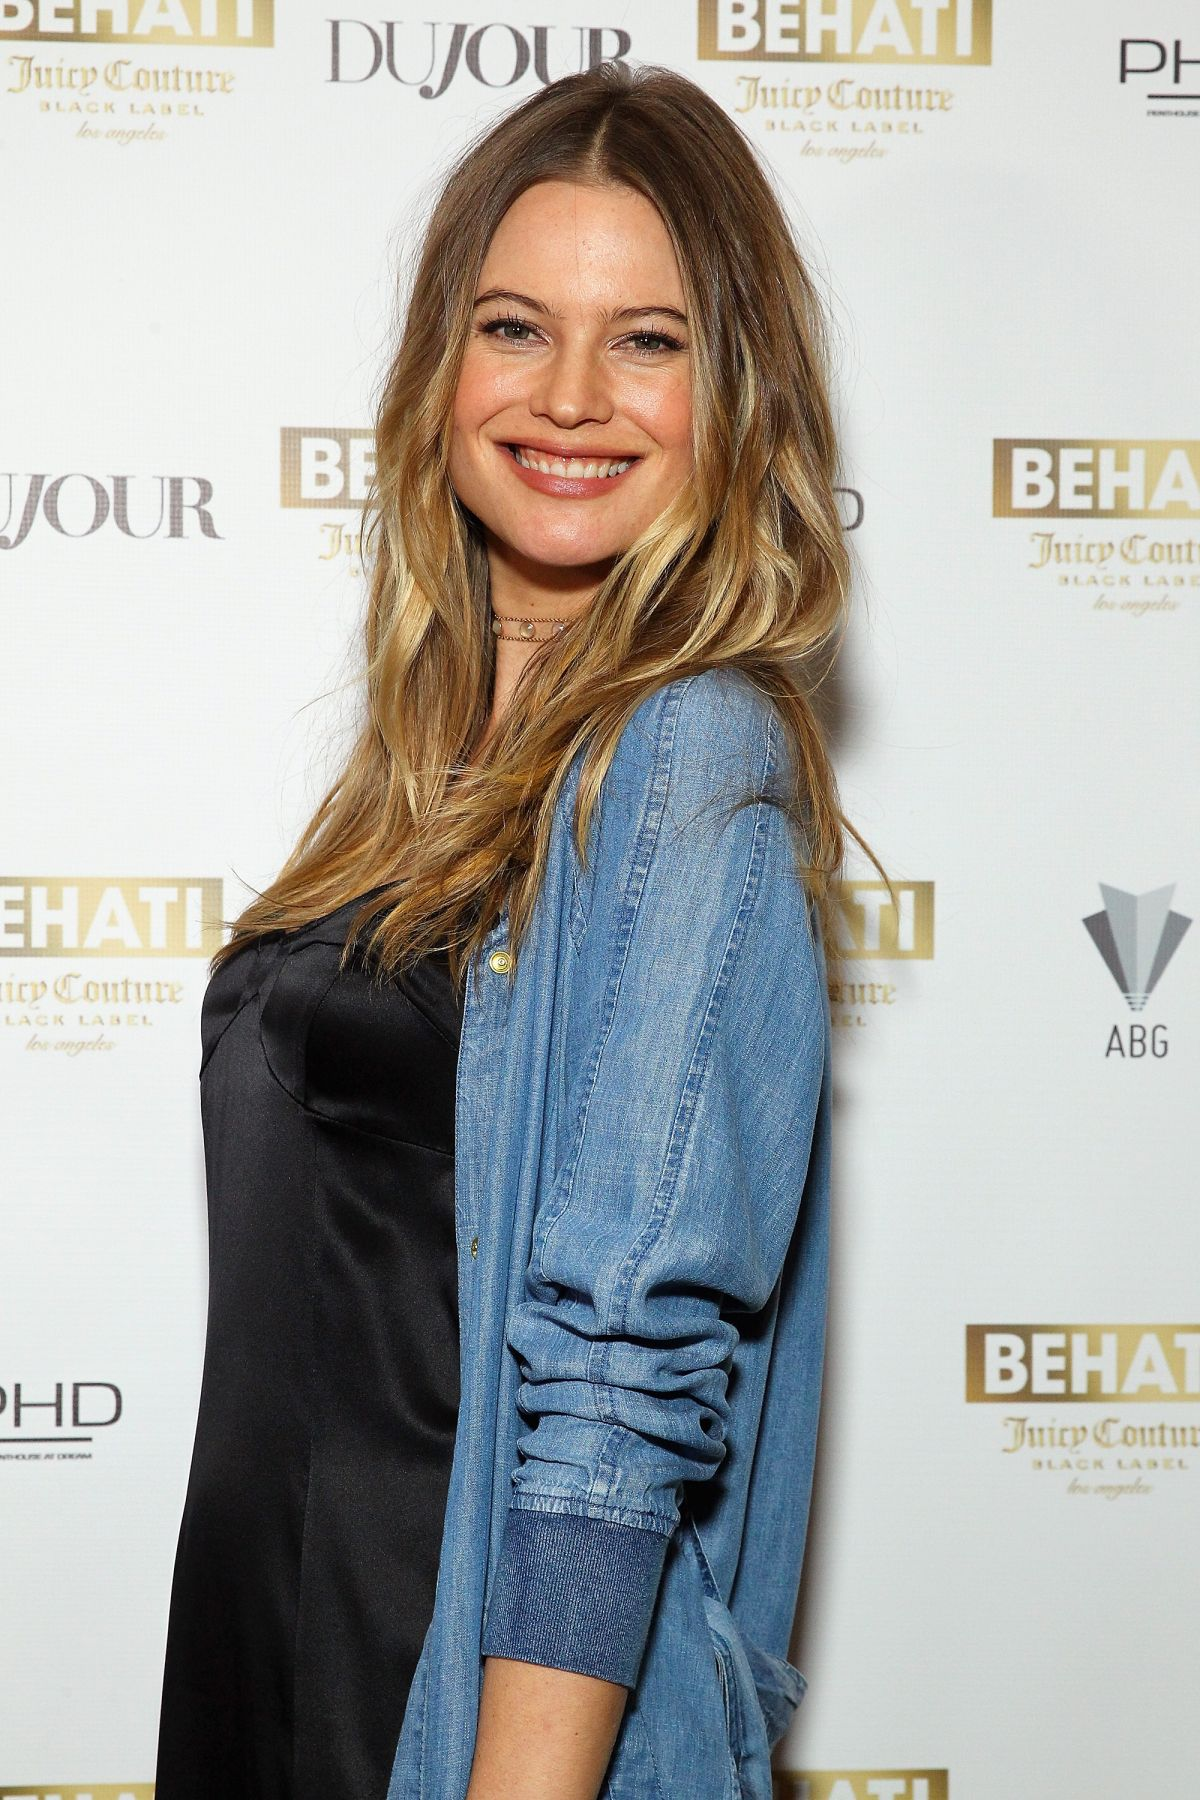 341d89029f20 behati-prinsloo-at-behati-x-juicy-couture-launch-in-new-york-03-23 ...